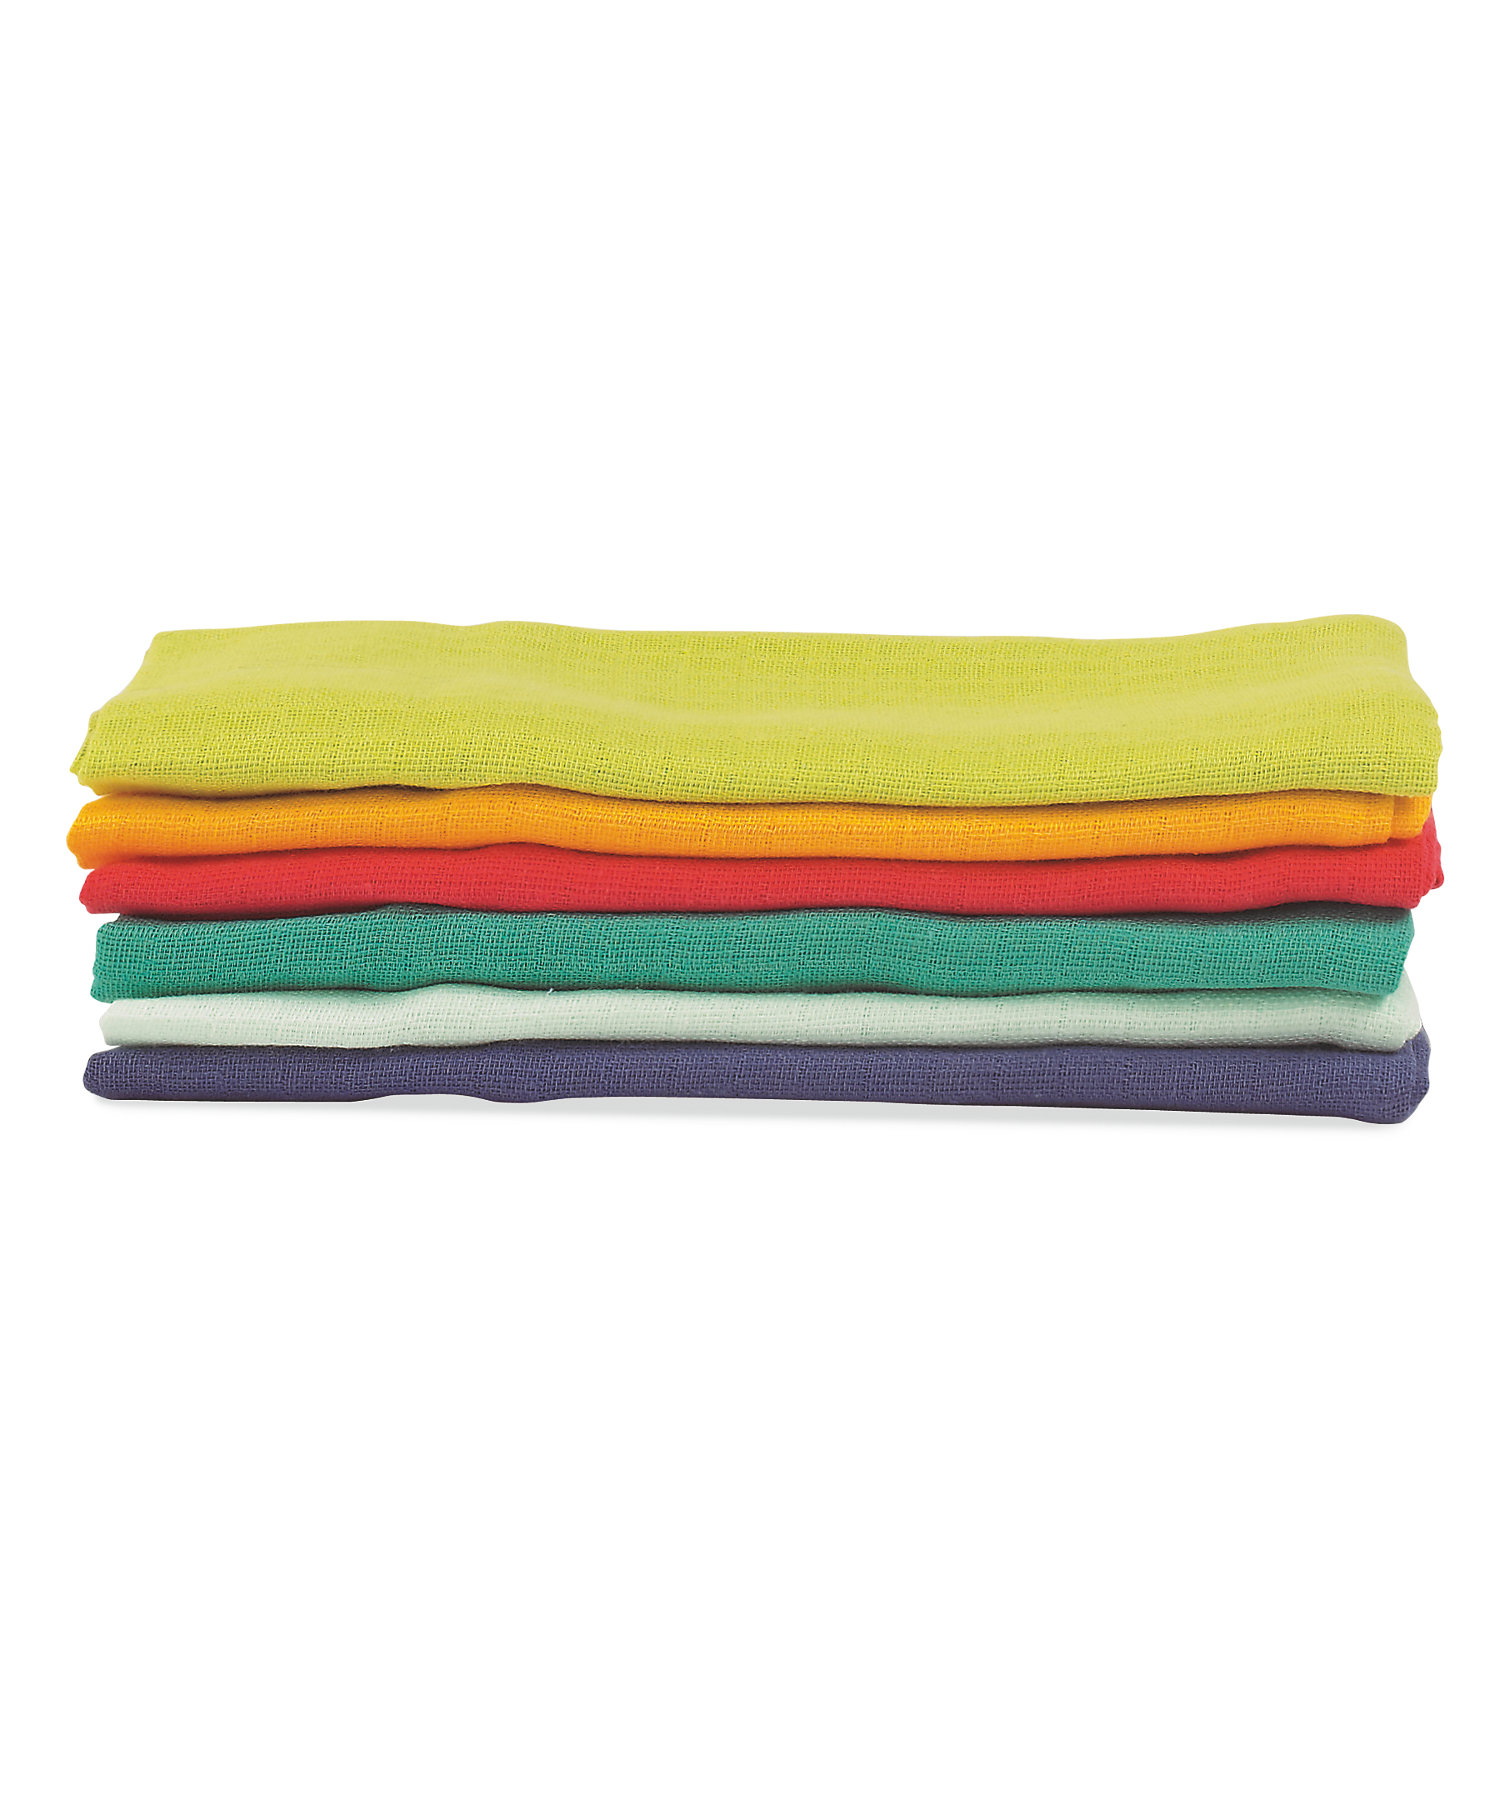 Mothercare | Mothercare Muslin Cloths Pack of 6 Multi